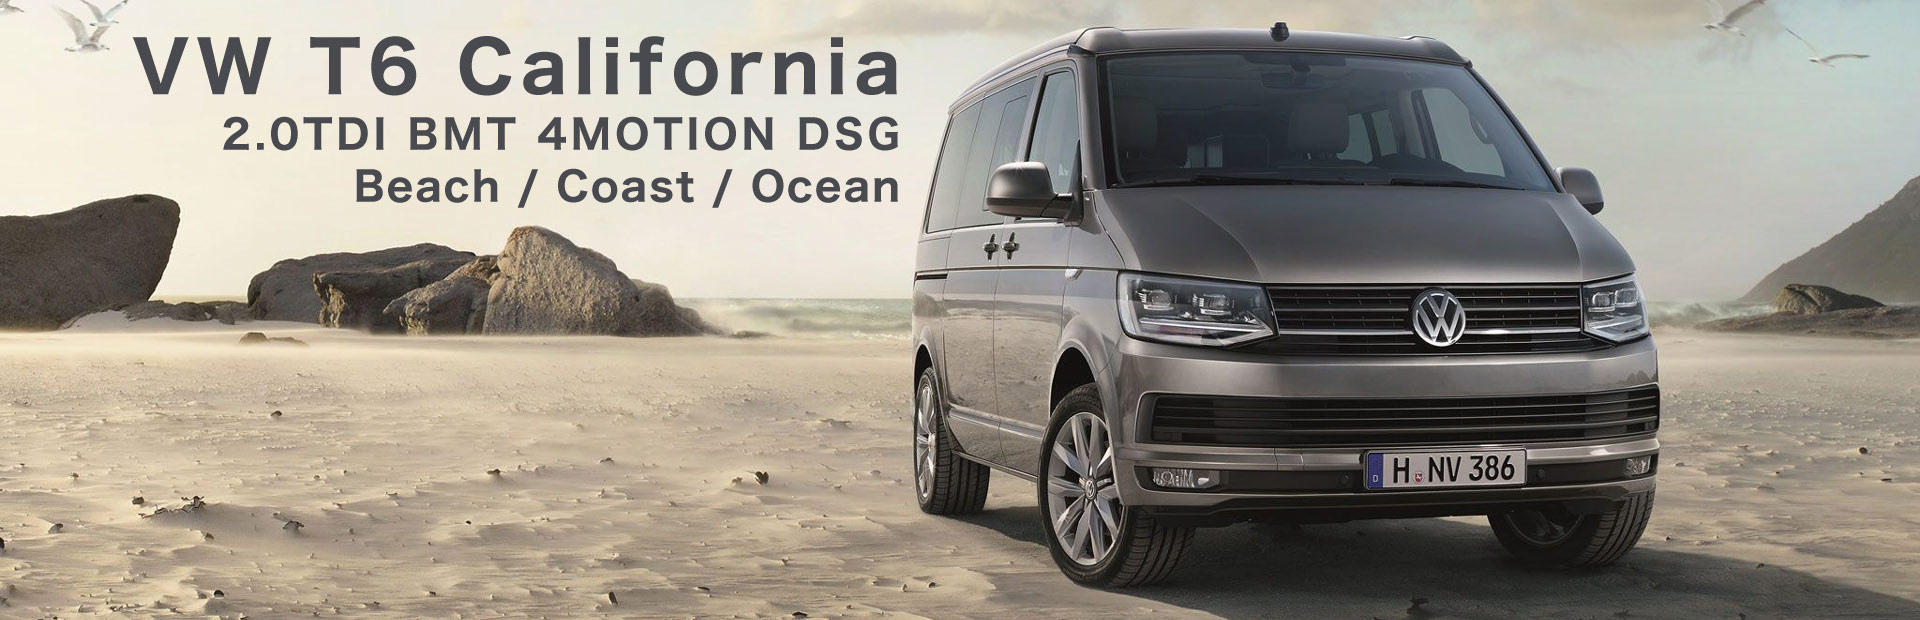 VW T6 California 2.0TDI BMT 4MOTION DSG